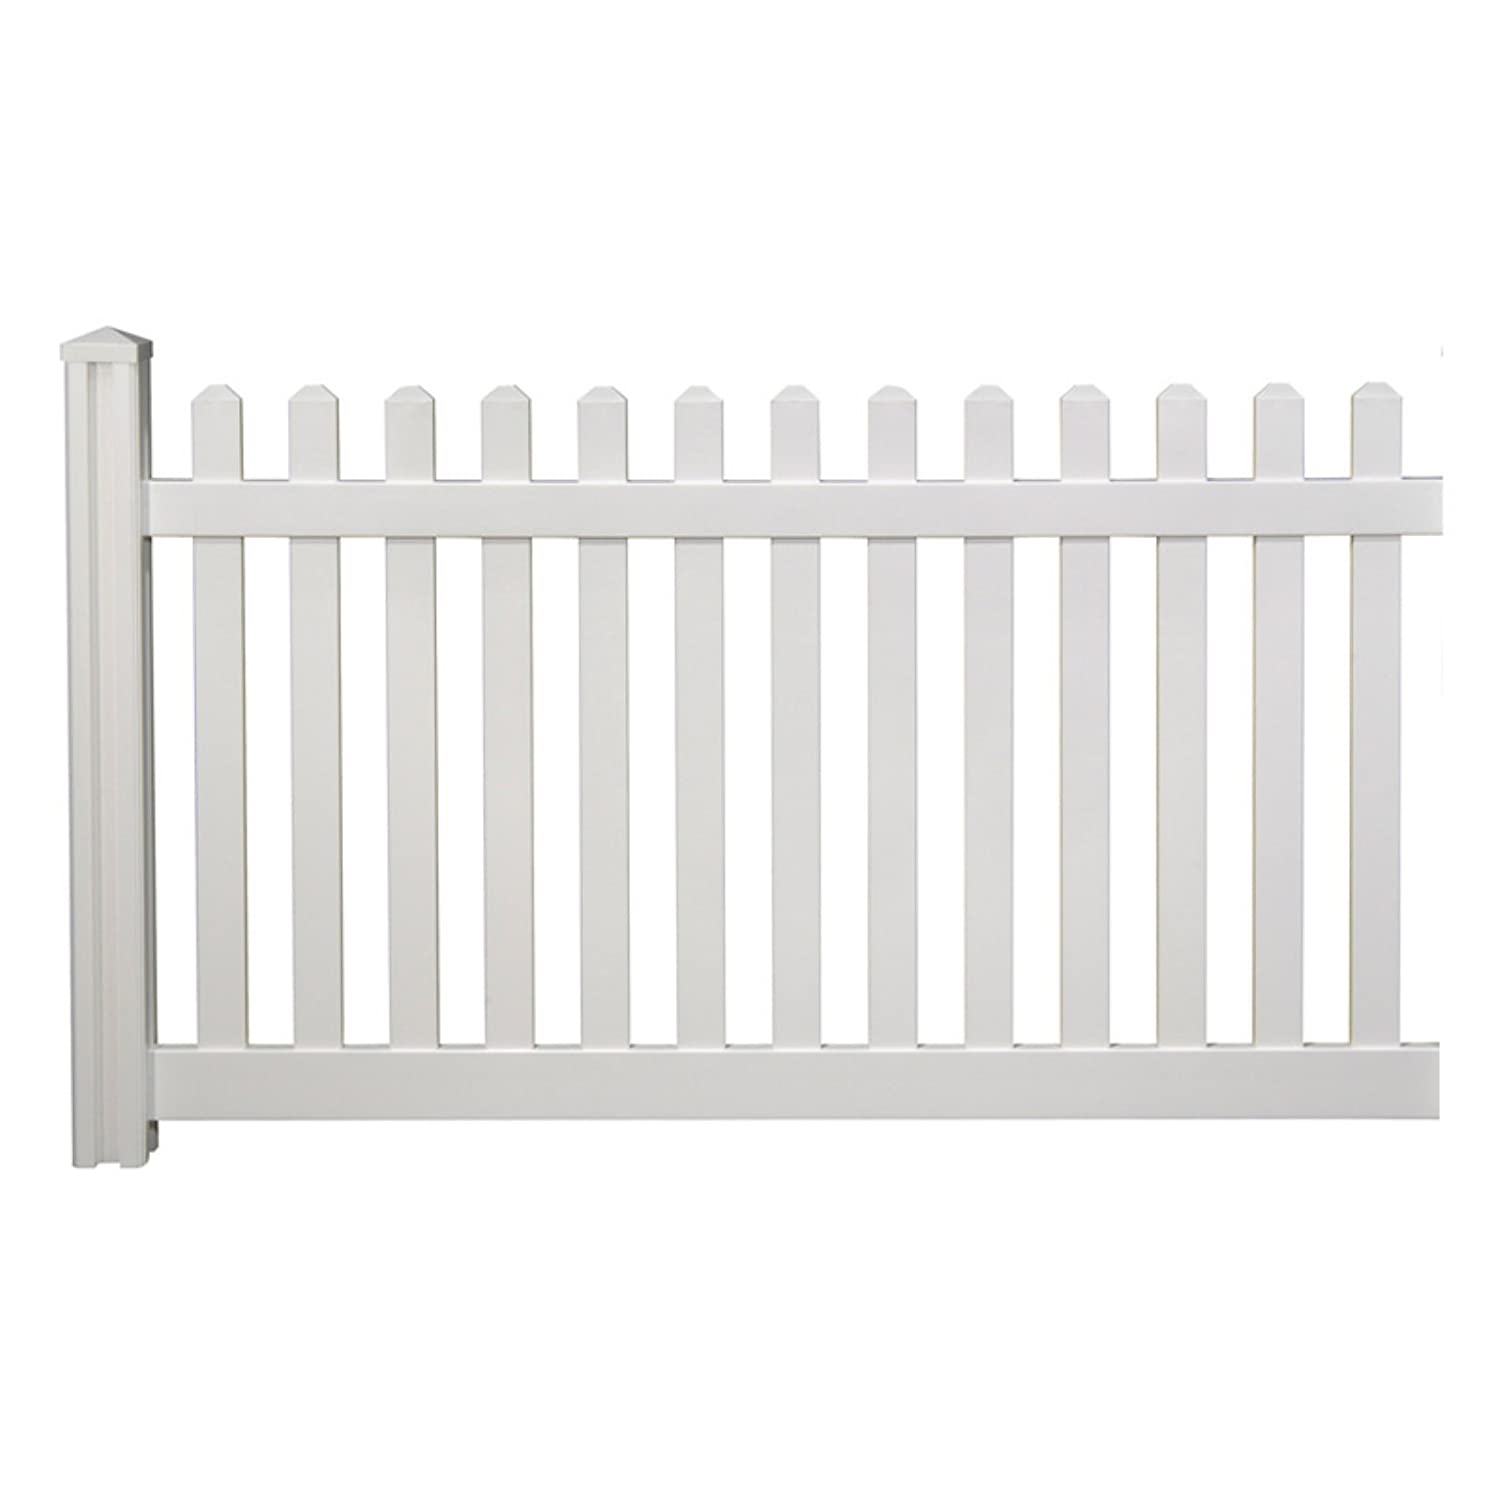 Amazon wambam traditional 4 by 7 feet premium classic vinyl amazon wambam traditional 4 by 7 feet premium classic vinyl picket fence with post and cap outdoor decorative fences patio lawn garden baanklon Images